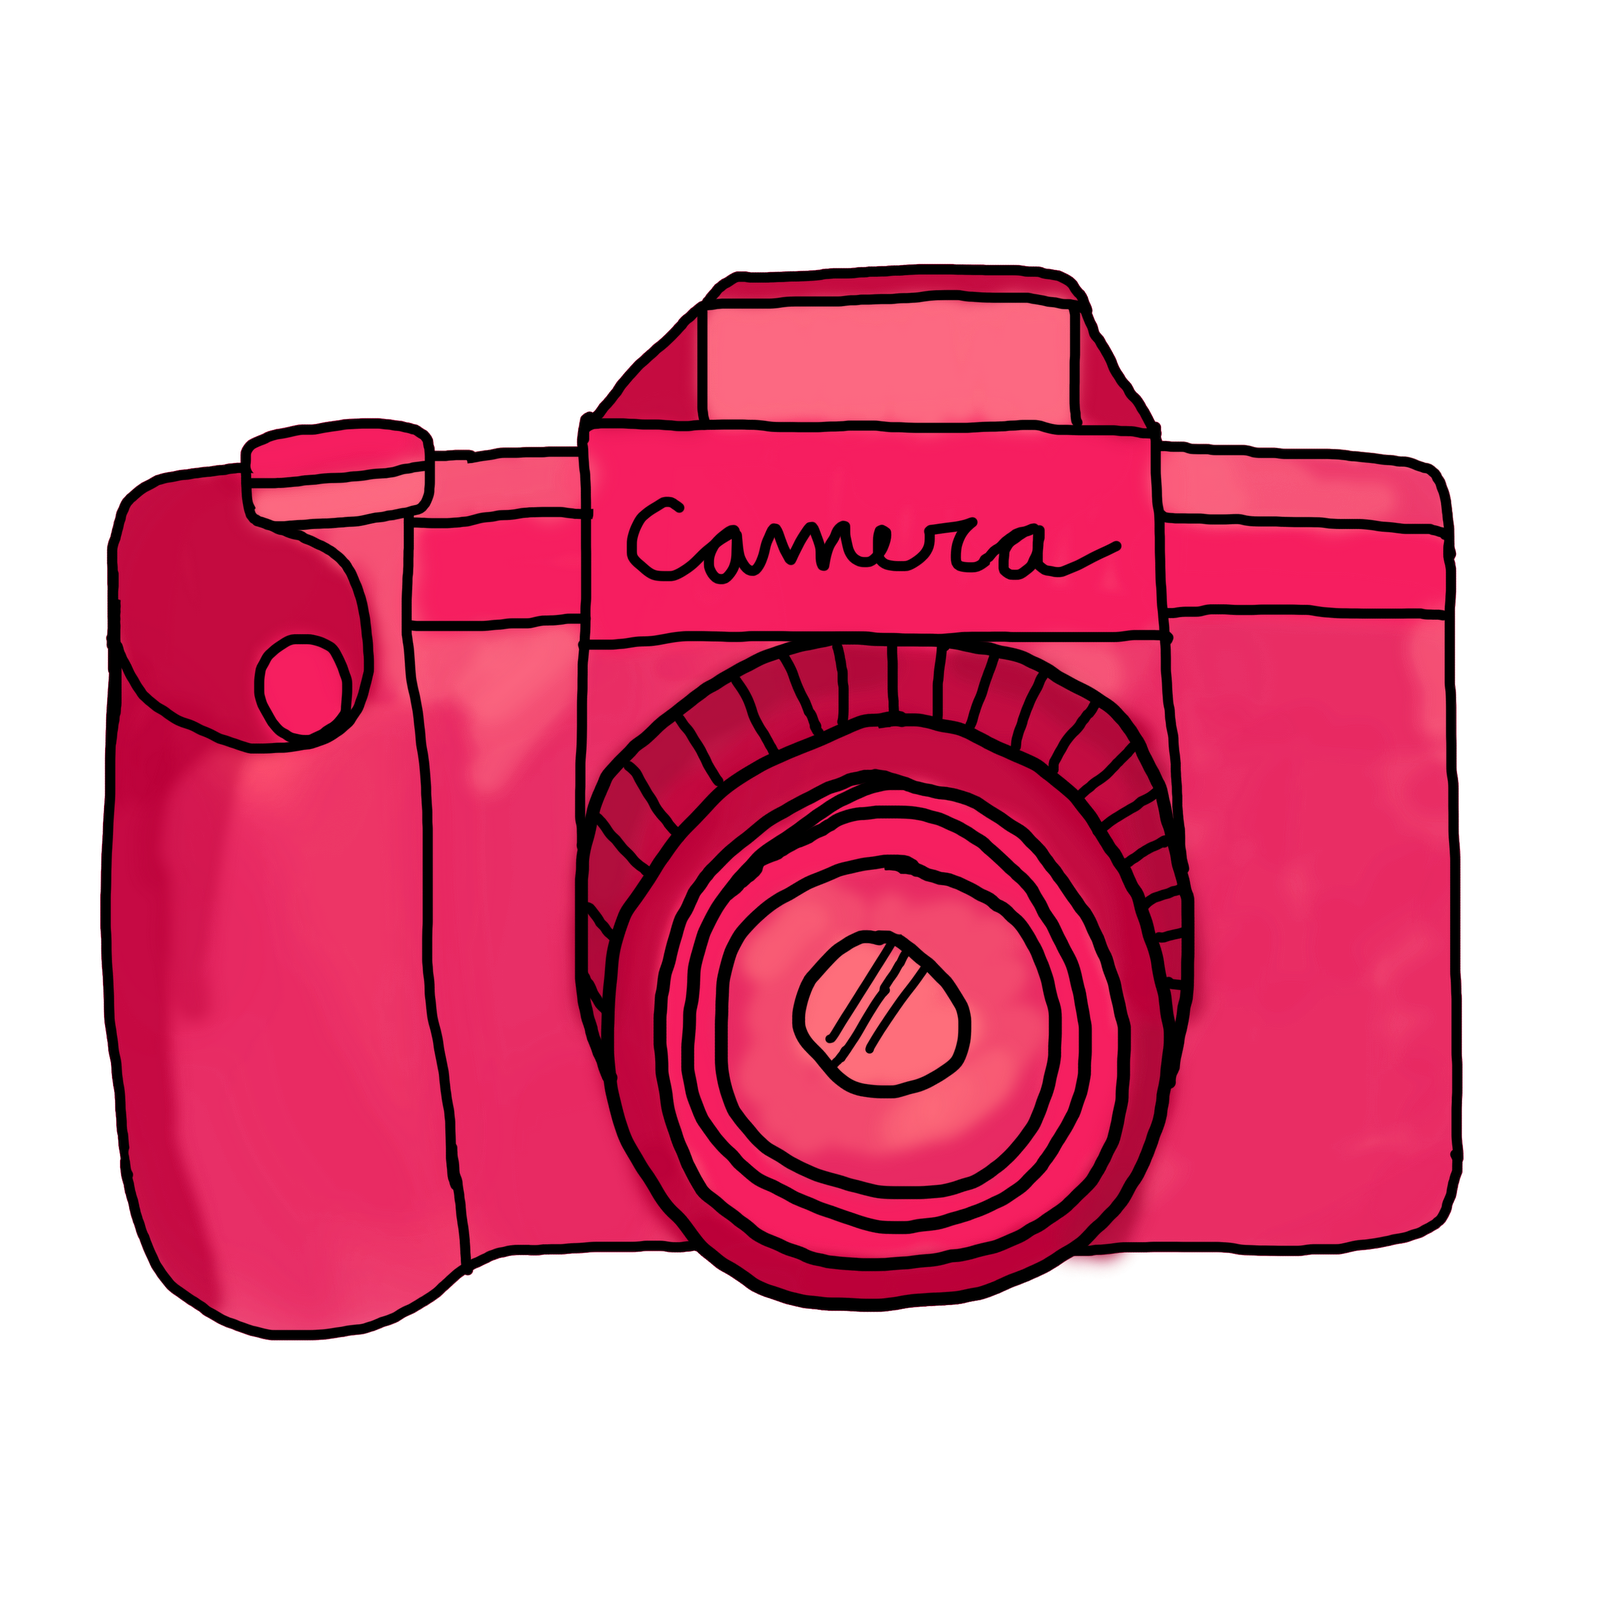 Camara vector vintage camera. Png transparent images pluspng